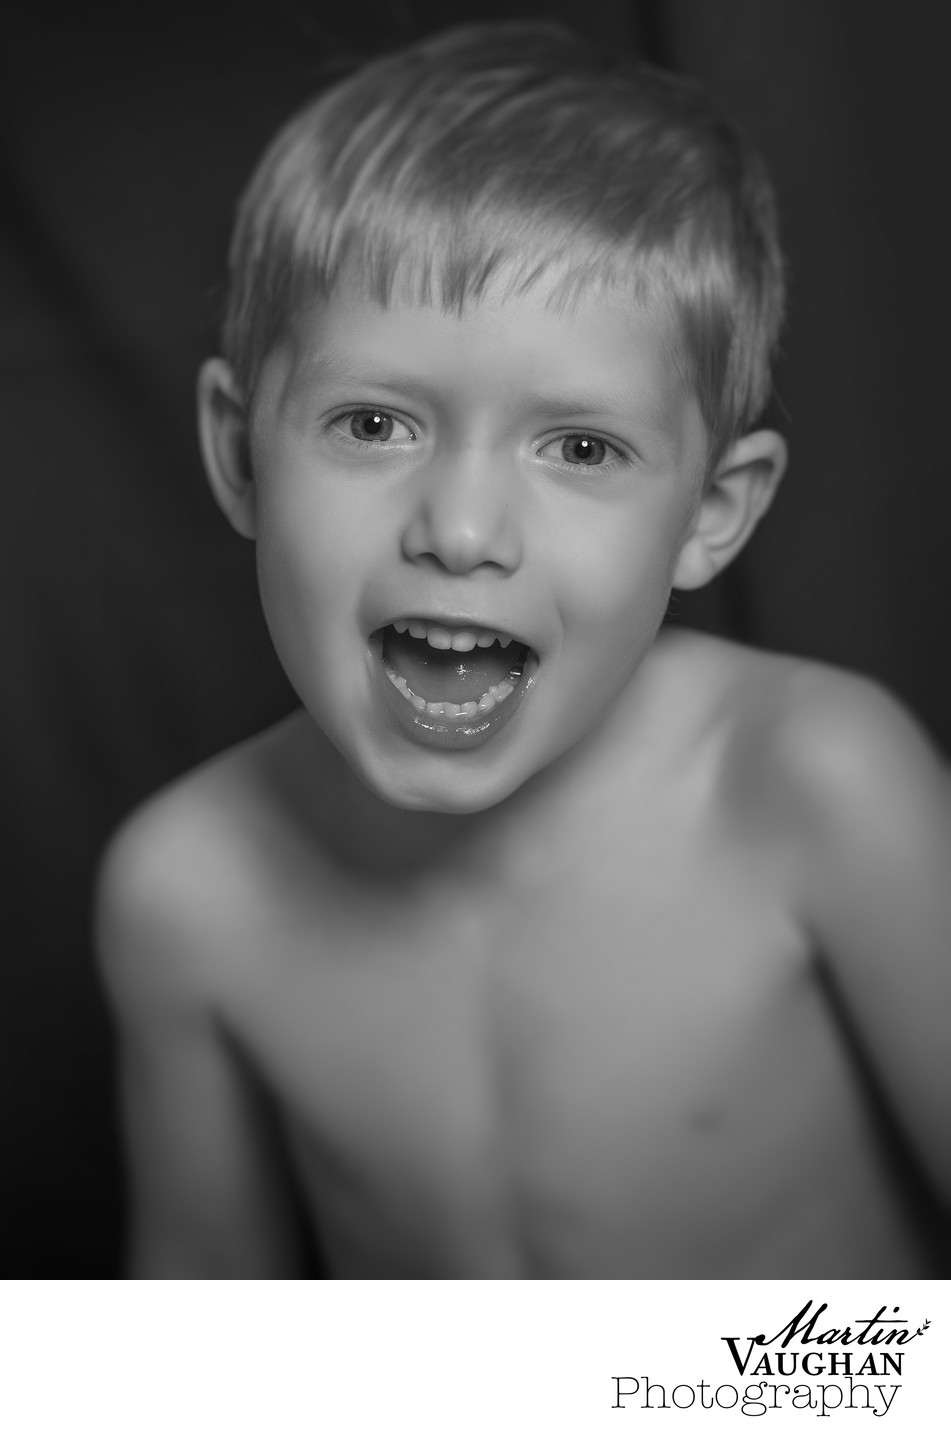 Childrens portrait photography in North Wales